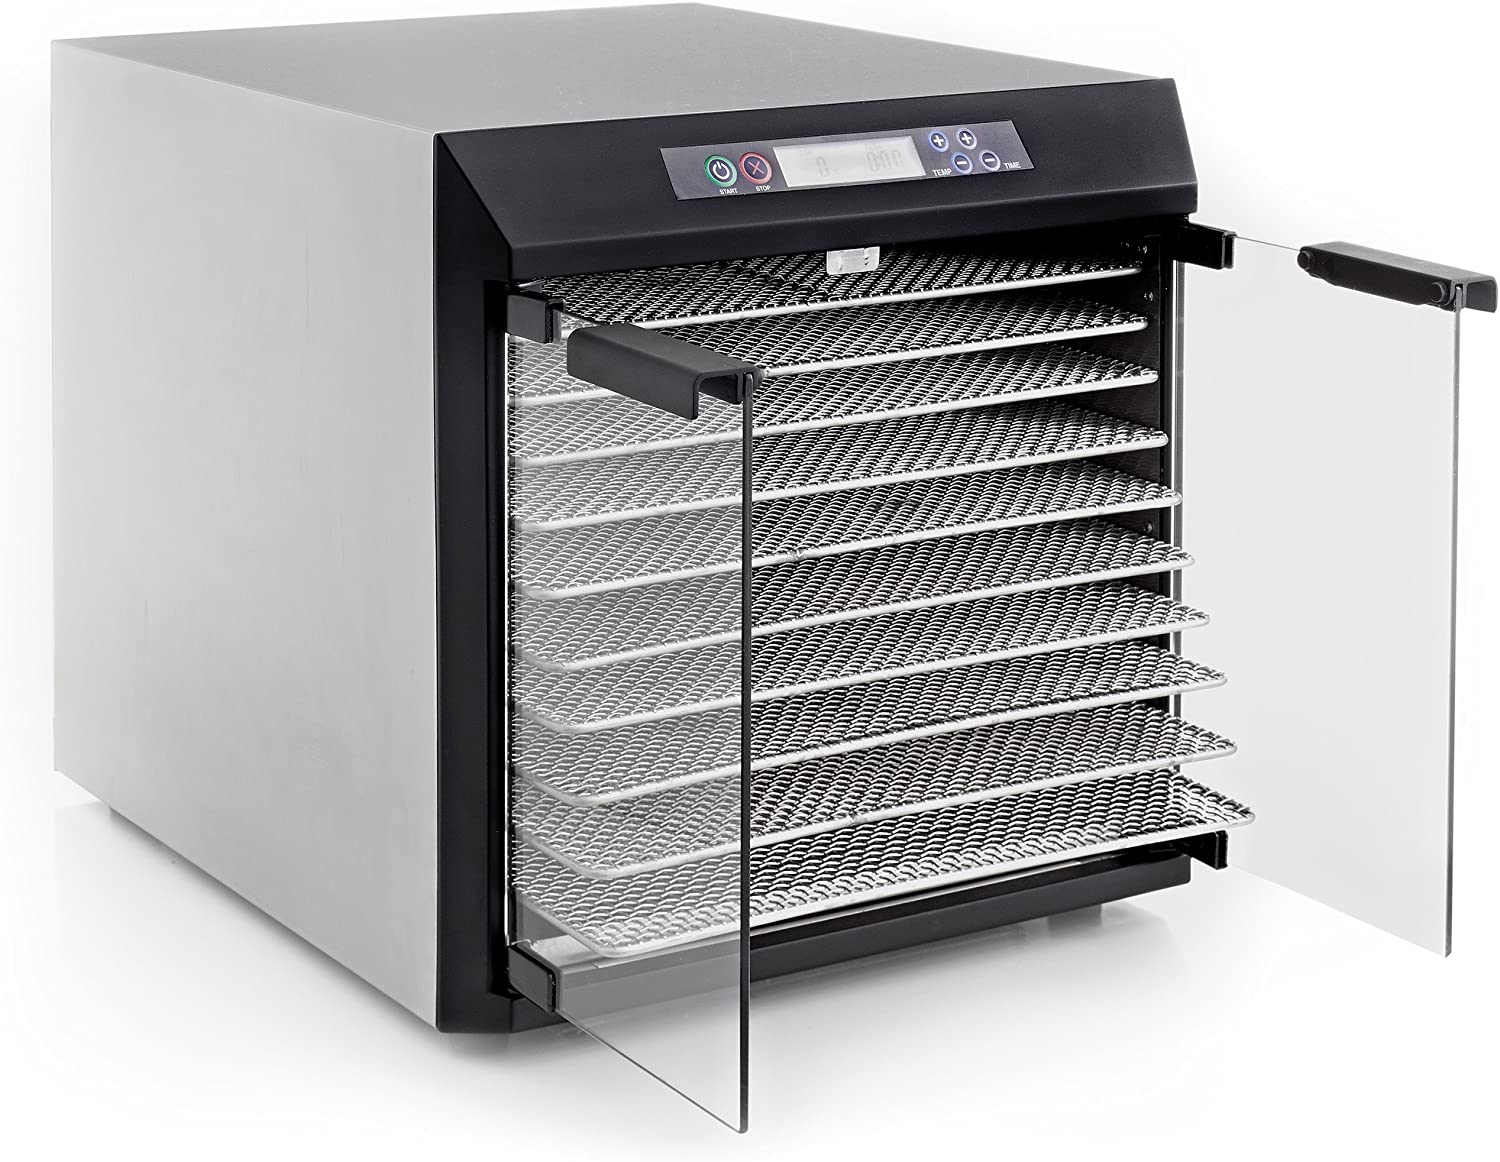 Excalibur-EXC10EL-Electric-Food-Dehydrator